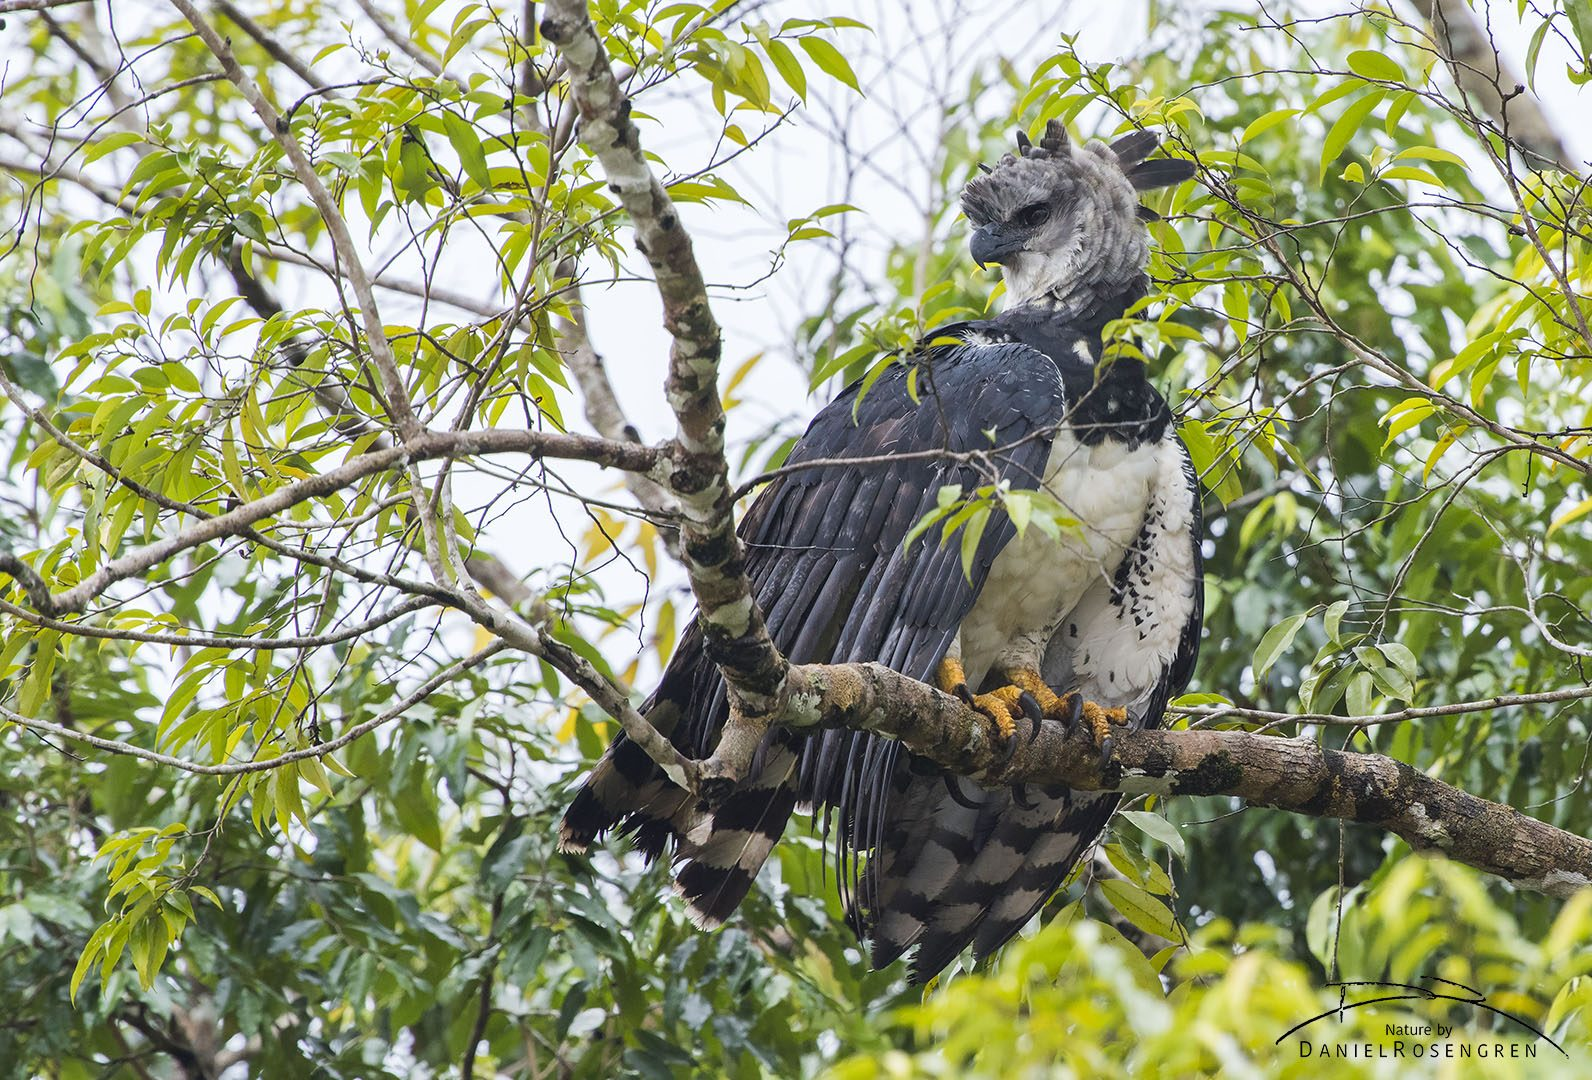 A Harpy Eagle seen along the River near Yaguas. © Daniel Rosengren